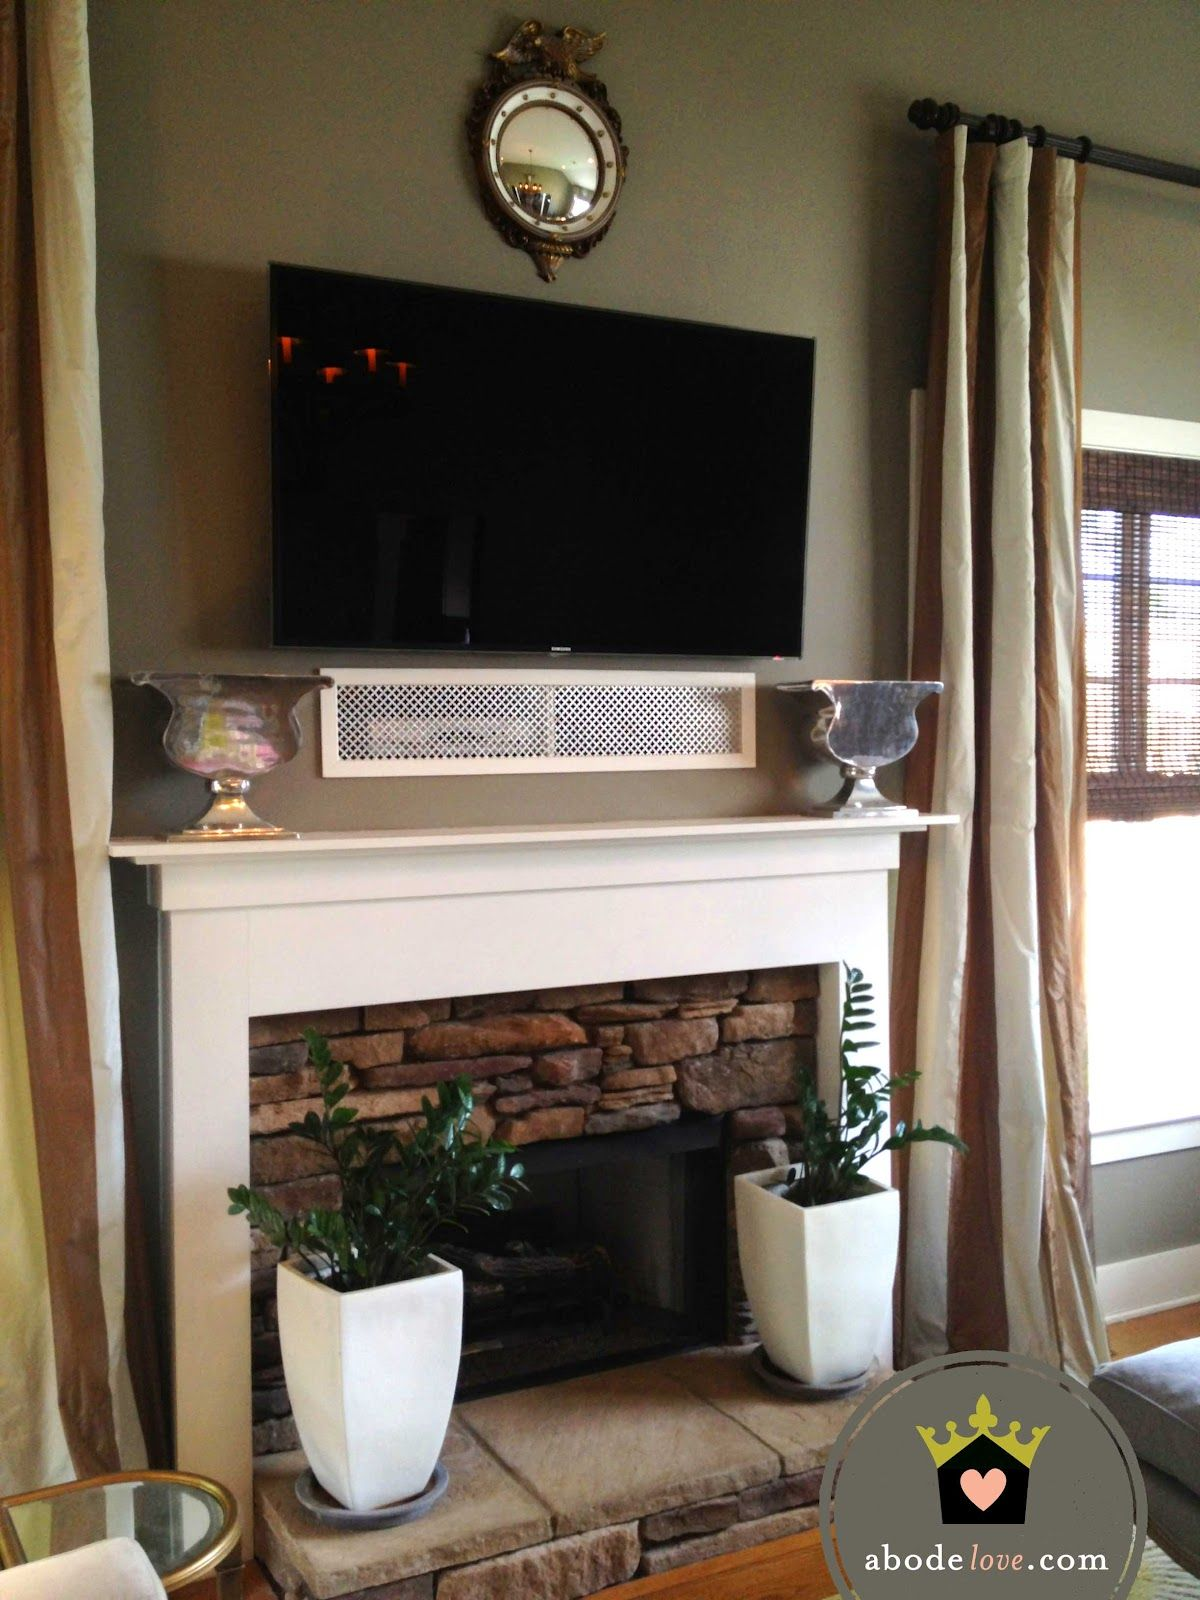 Great Way To Handle Tv Components Abode Love A Man S Home Is His Wife S Castle Tv Above Fireplace Tv Over Fireplace Fireplace